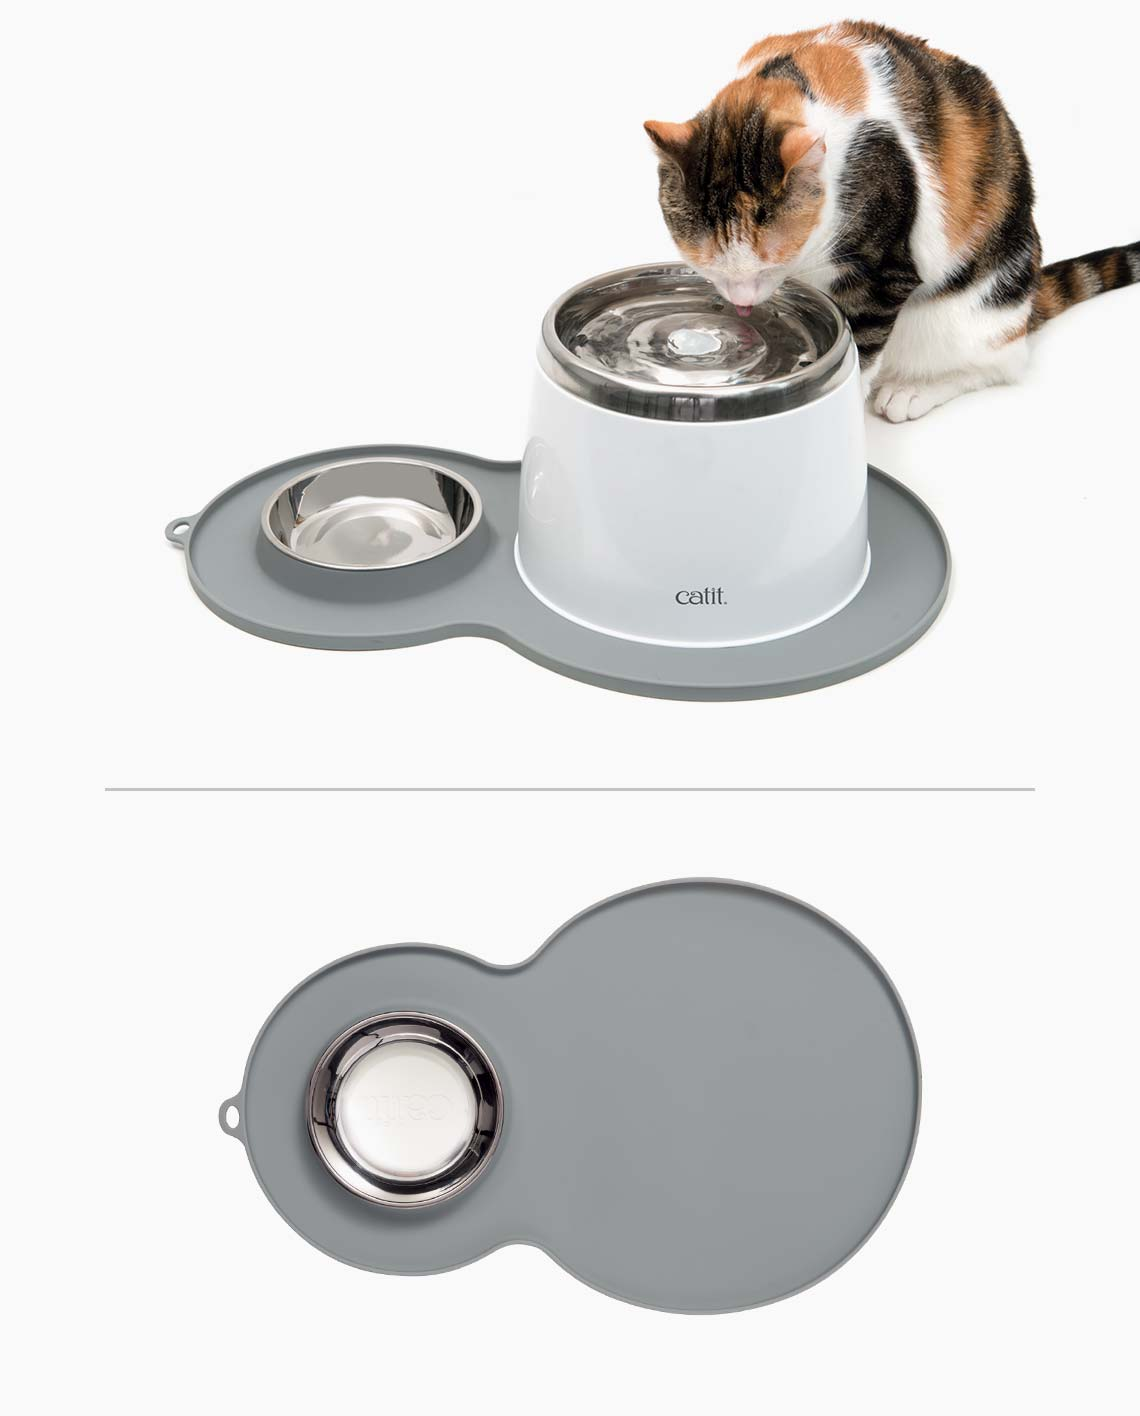 Pixi drinking from a stainless steel drinking fountain on a peanut placemat